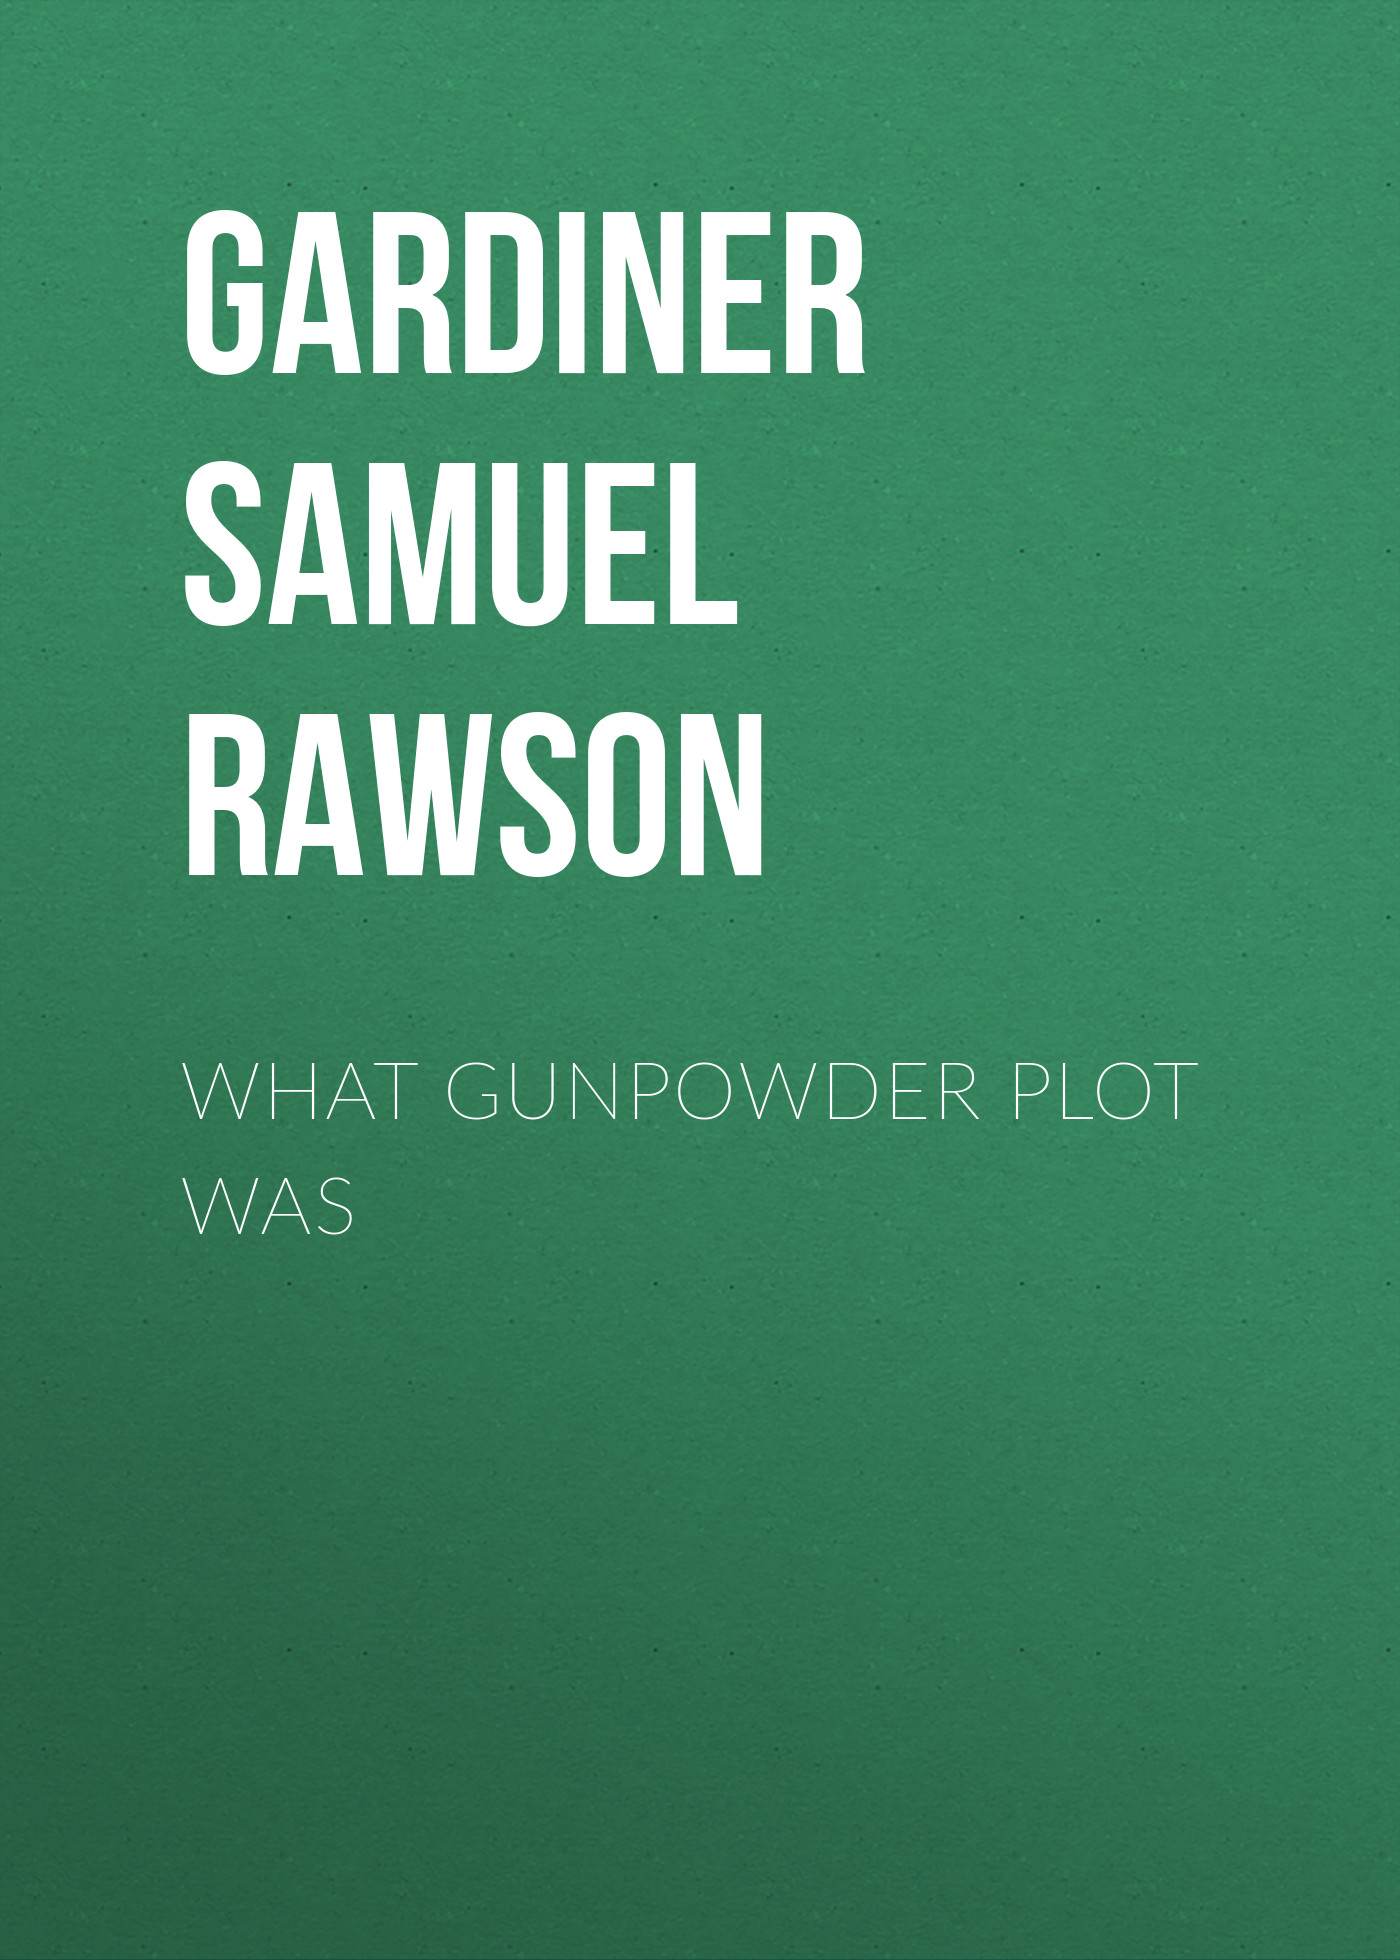 лучшая цена Gardiner Samuel Rawson What Gunpowder Plot Was